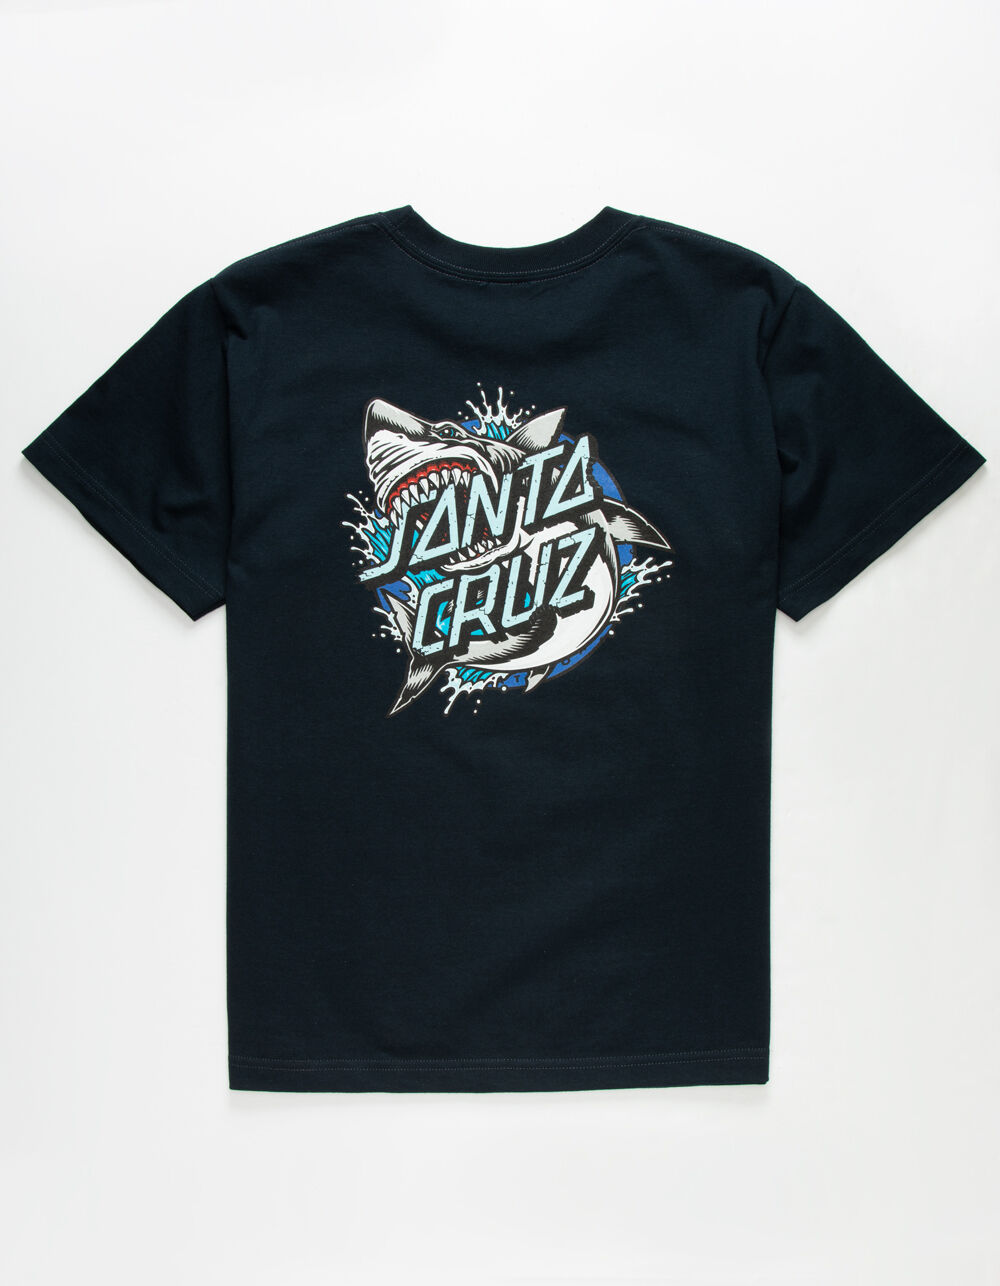 SANTA CRUZ Shark Dot Navy Boys T-Shirt